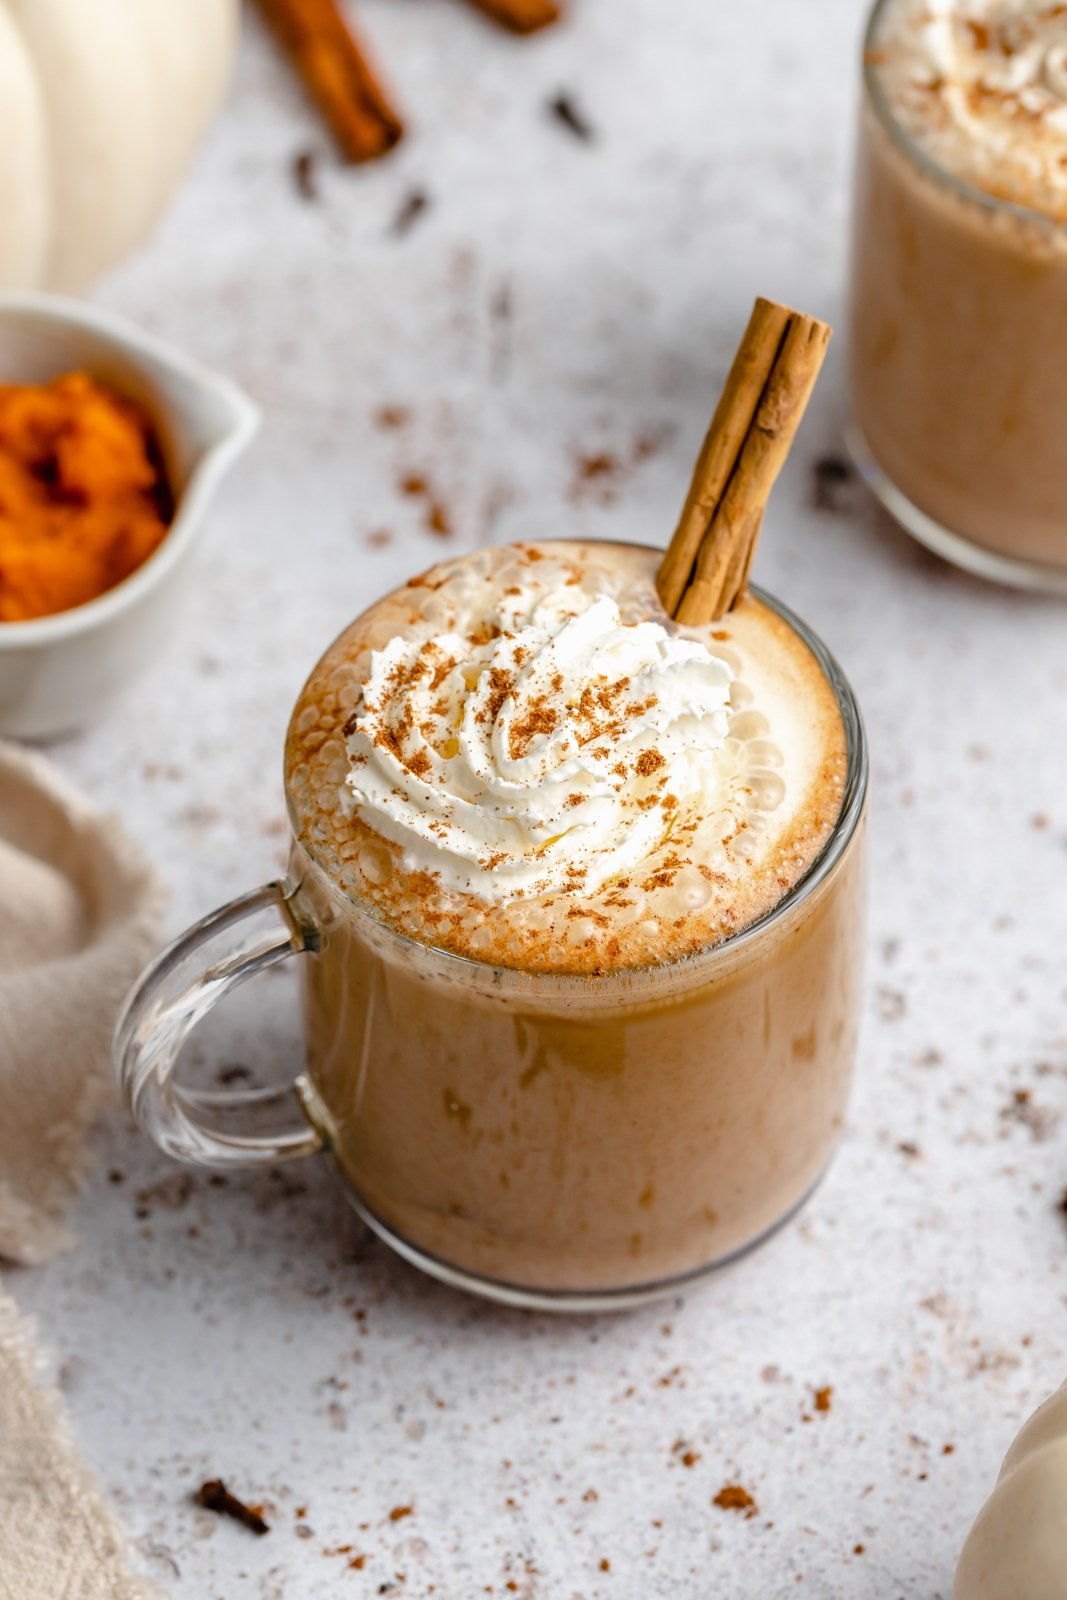 homemade pumpkin spice latte with whipped cream in a mug